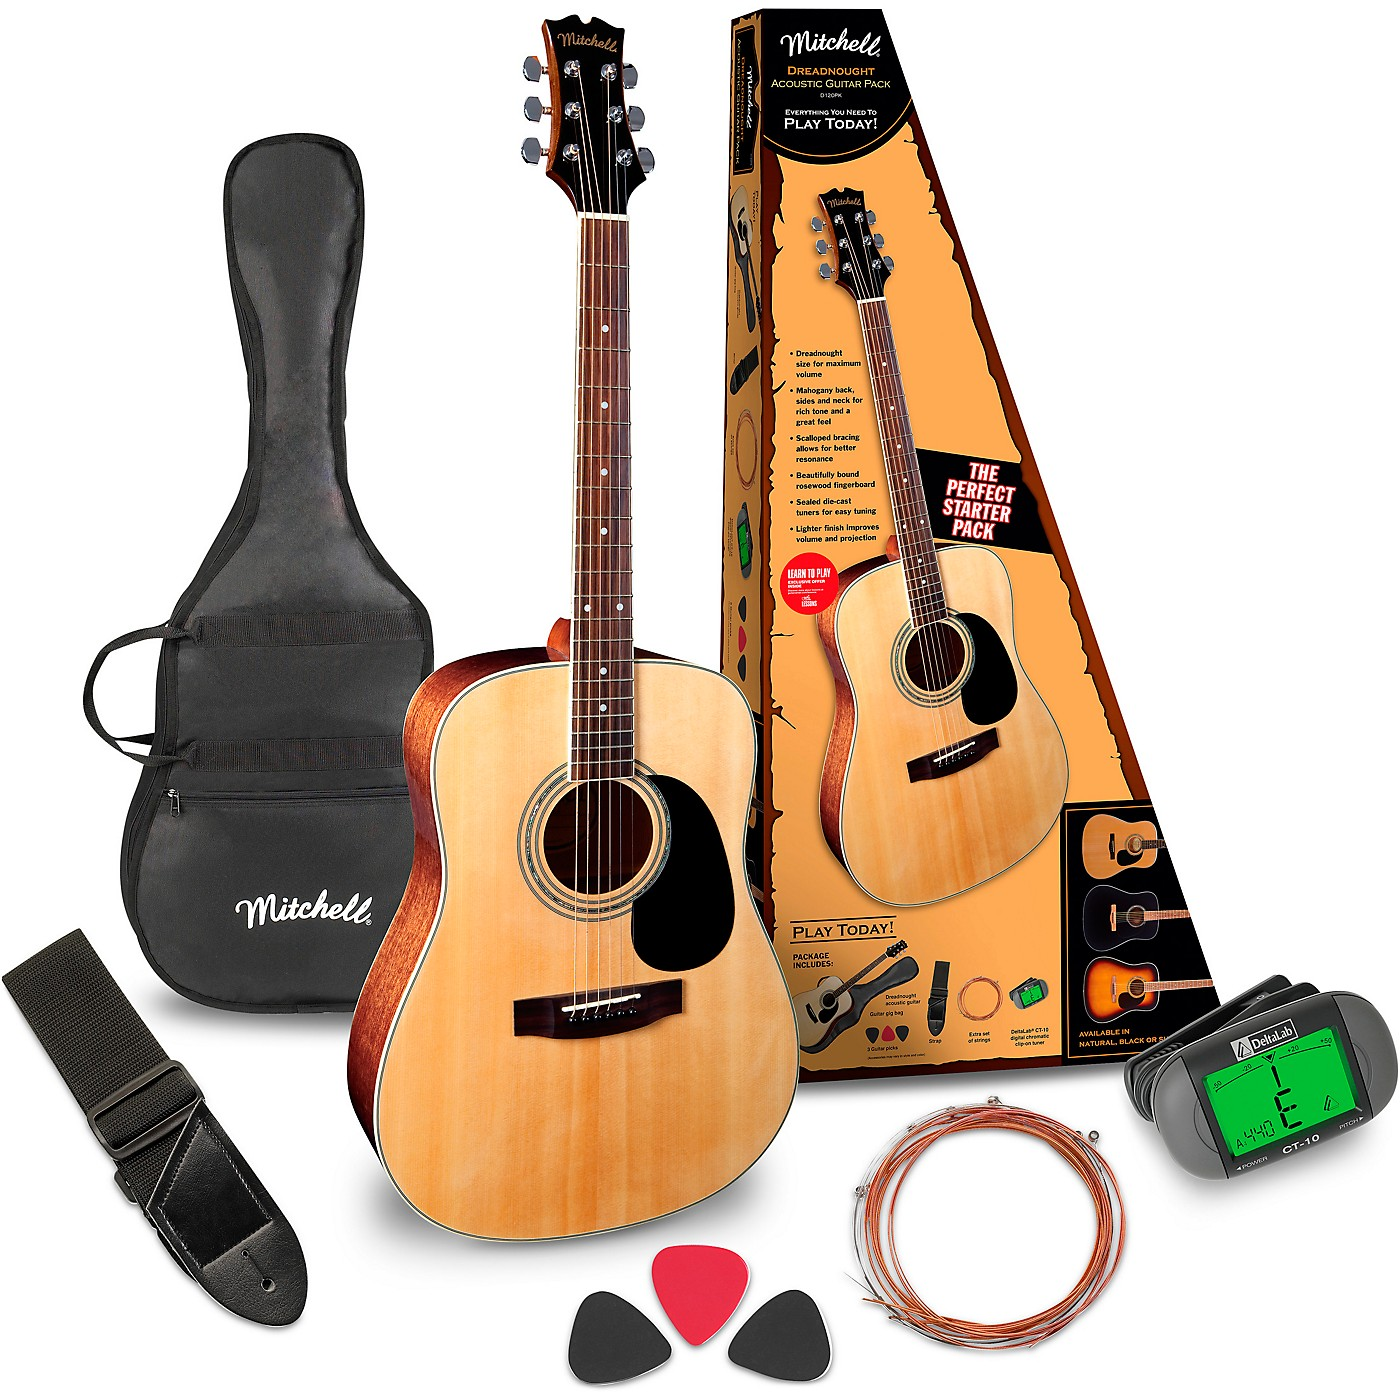 Mitchell D120PK Acoustic Guitar Value Package thumbnail